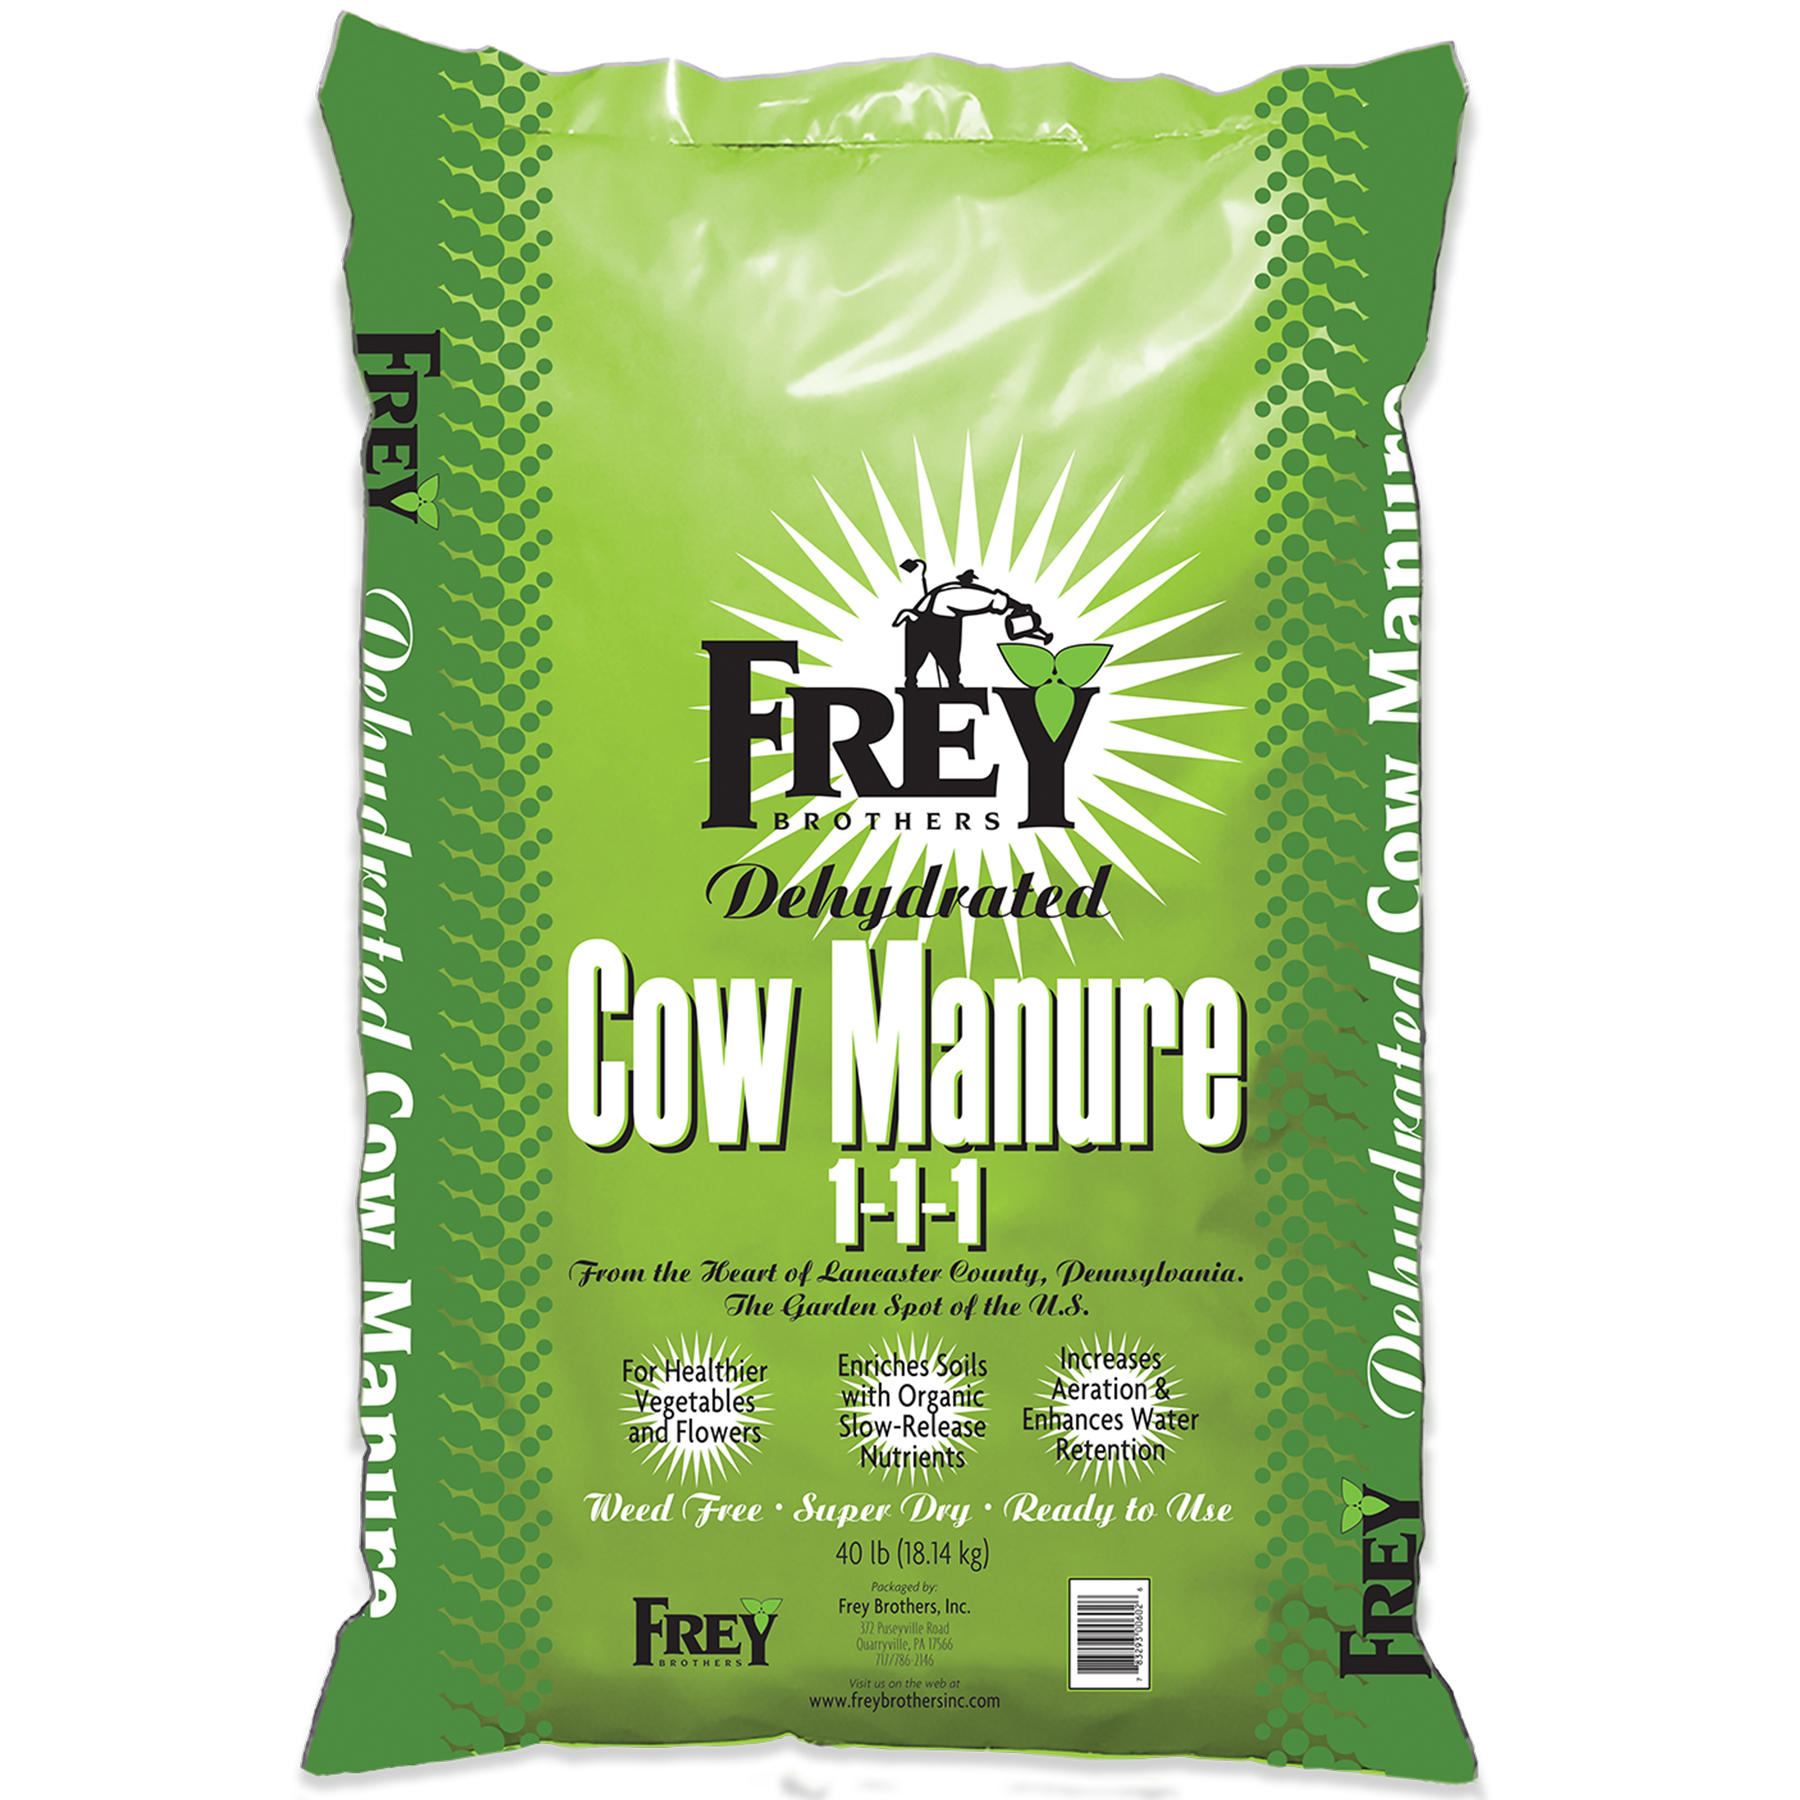 Dehydrated Cow Manure 1-1-1